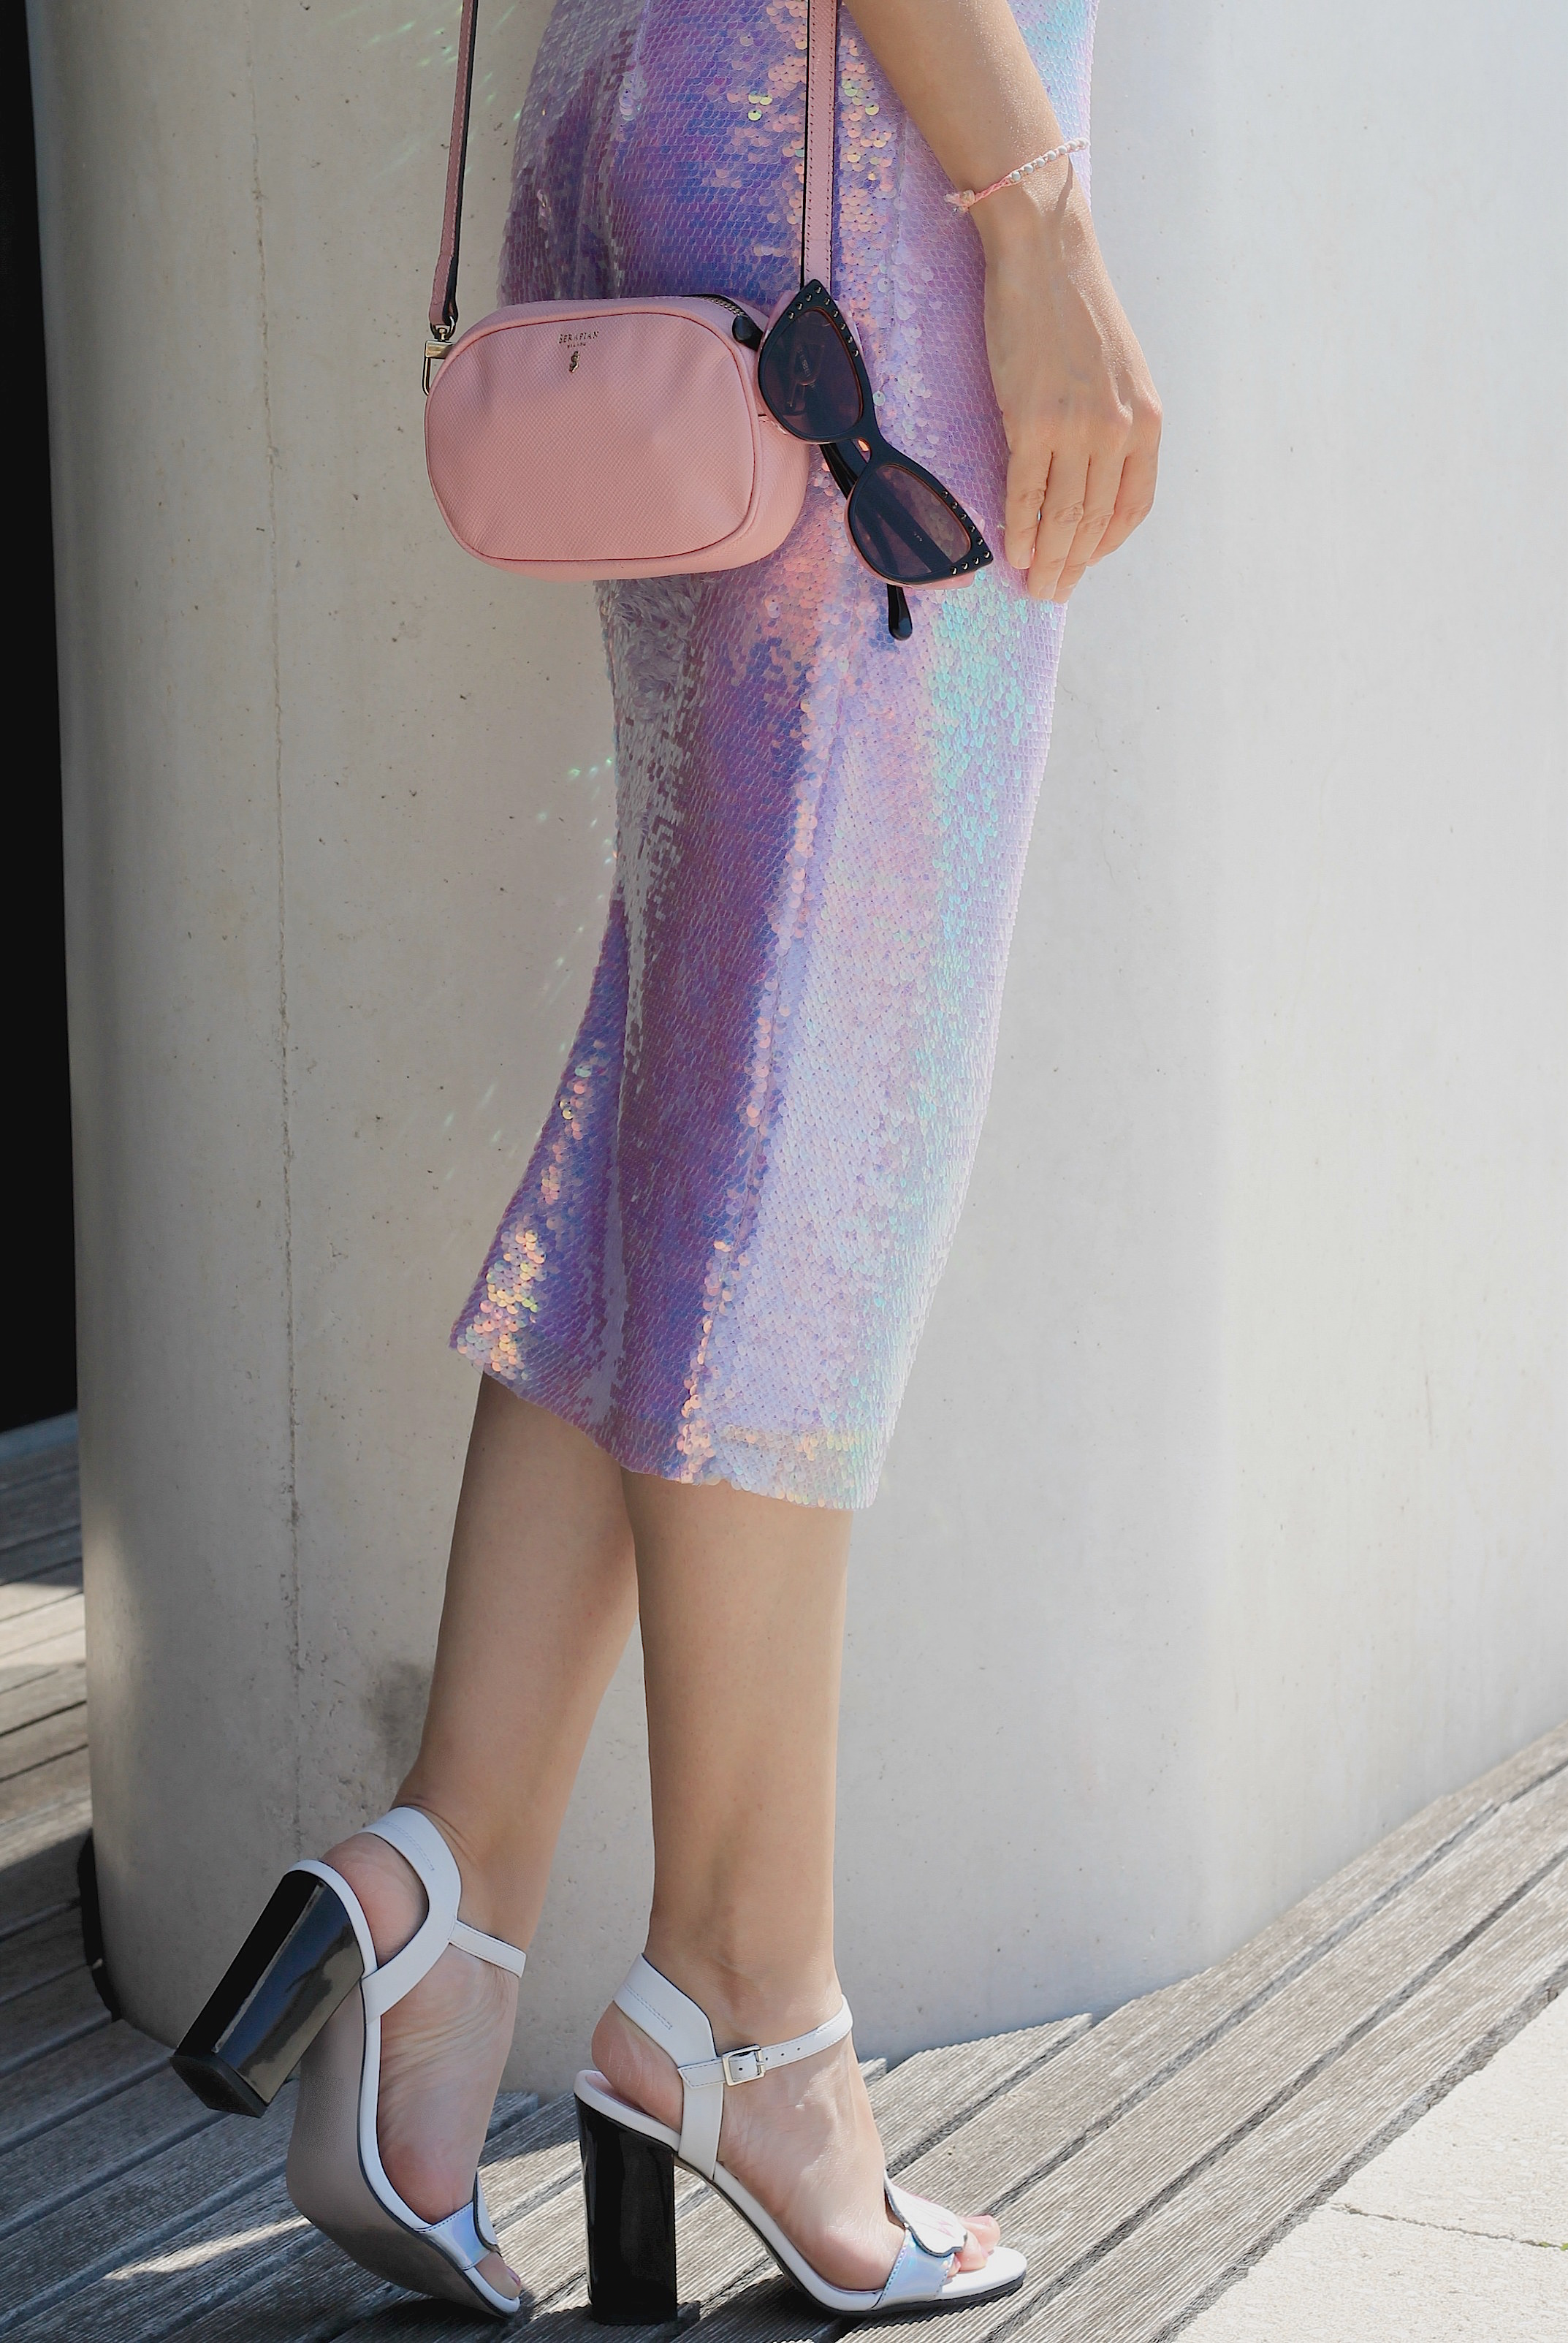 easy trend, sparkly skirt 2016, sequined skirt summer 2016, mermaid trend 2016, theladycracy.it, elisa bellino, fashion blog 2016, fashion blogger 2016, fashion blogger italia 2016, fashion blogger milano 2016, fashion blogger famose 2016, cosa mi metto sera estate 2016, cosa mi metto estate 2016, cosa va di moda estate 2016, paillettes gonna rosa 2016, come si porta una gonna in paillettes 2016, sandali asos 2016 estate, fashion blogger outfit estate 2016, elisa bellino, fashion influencer italia 2016, gonna sirena paillettes 2016, gonna otherstories 2016, trucco dior makeup estate 2016, top bianco zara 2016, come indossare il rosa 2016,